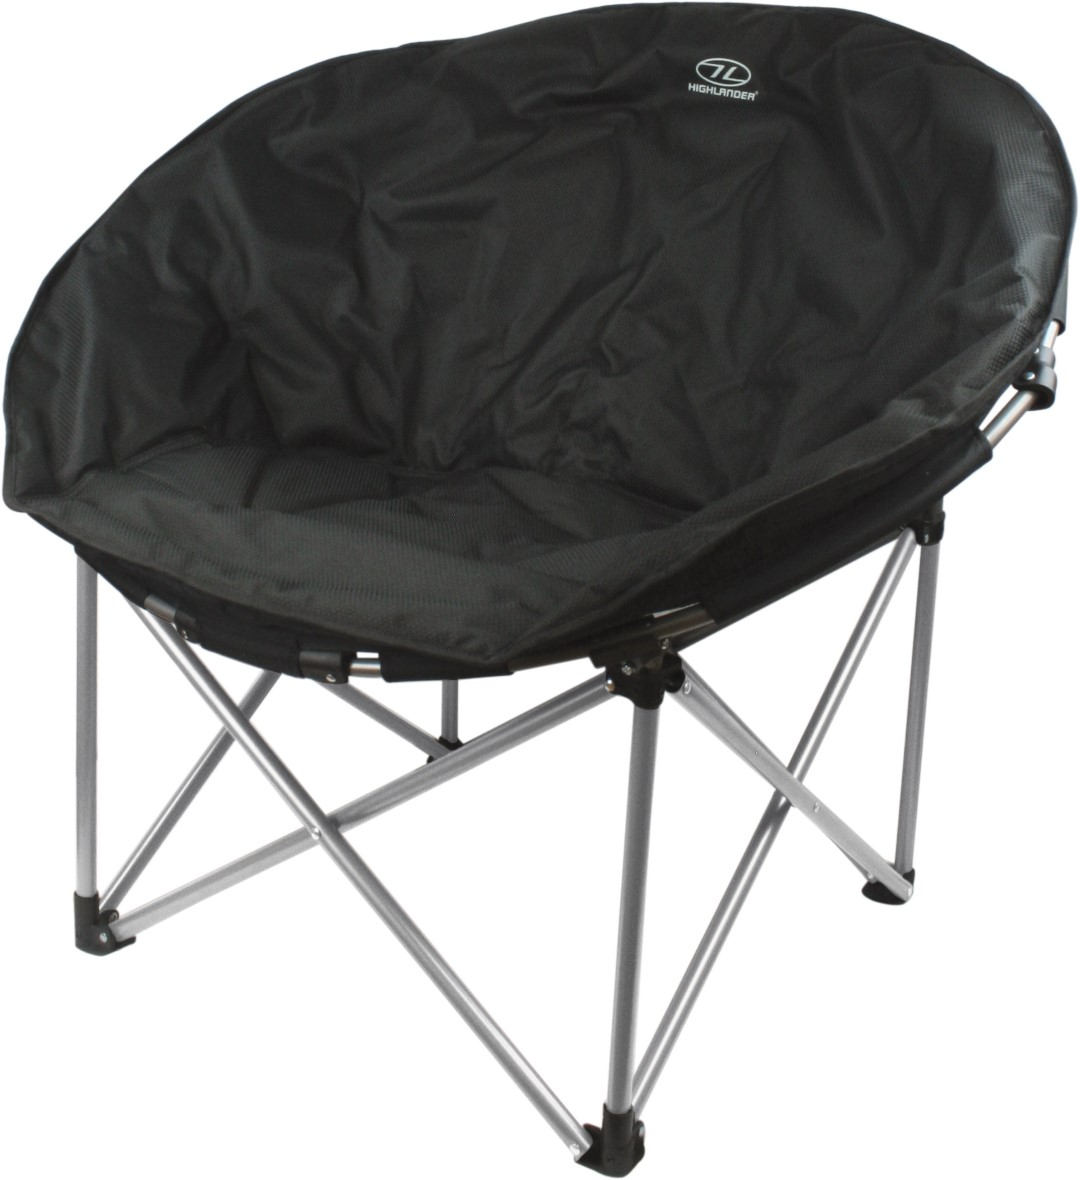 Highlander Black Moon Chair Portable Folding Camping Furniture Seat